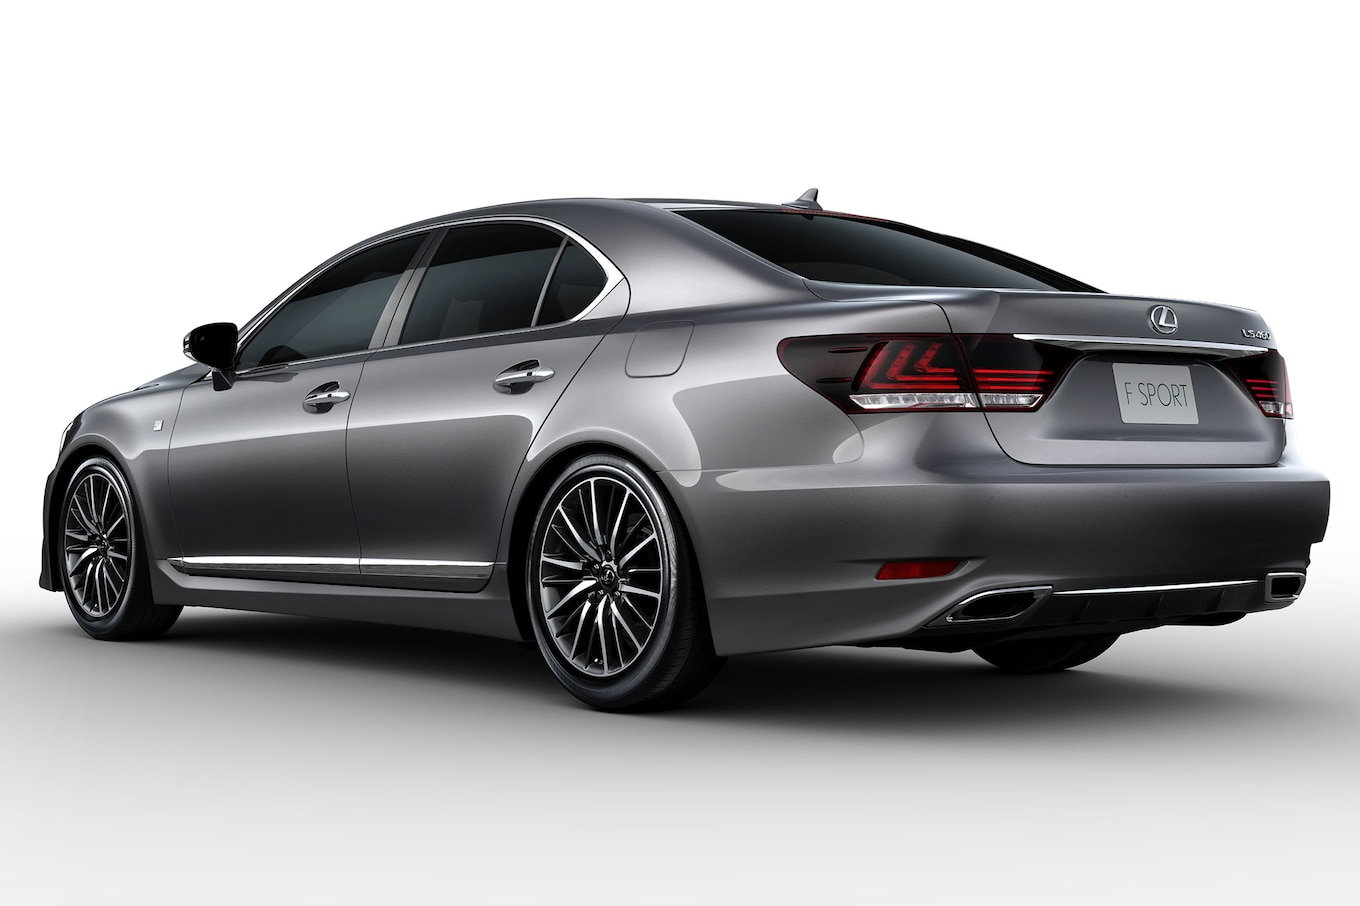 2013 Lexus LS460 Reviews and Rating